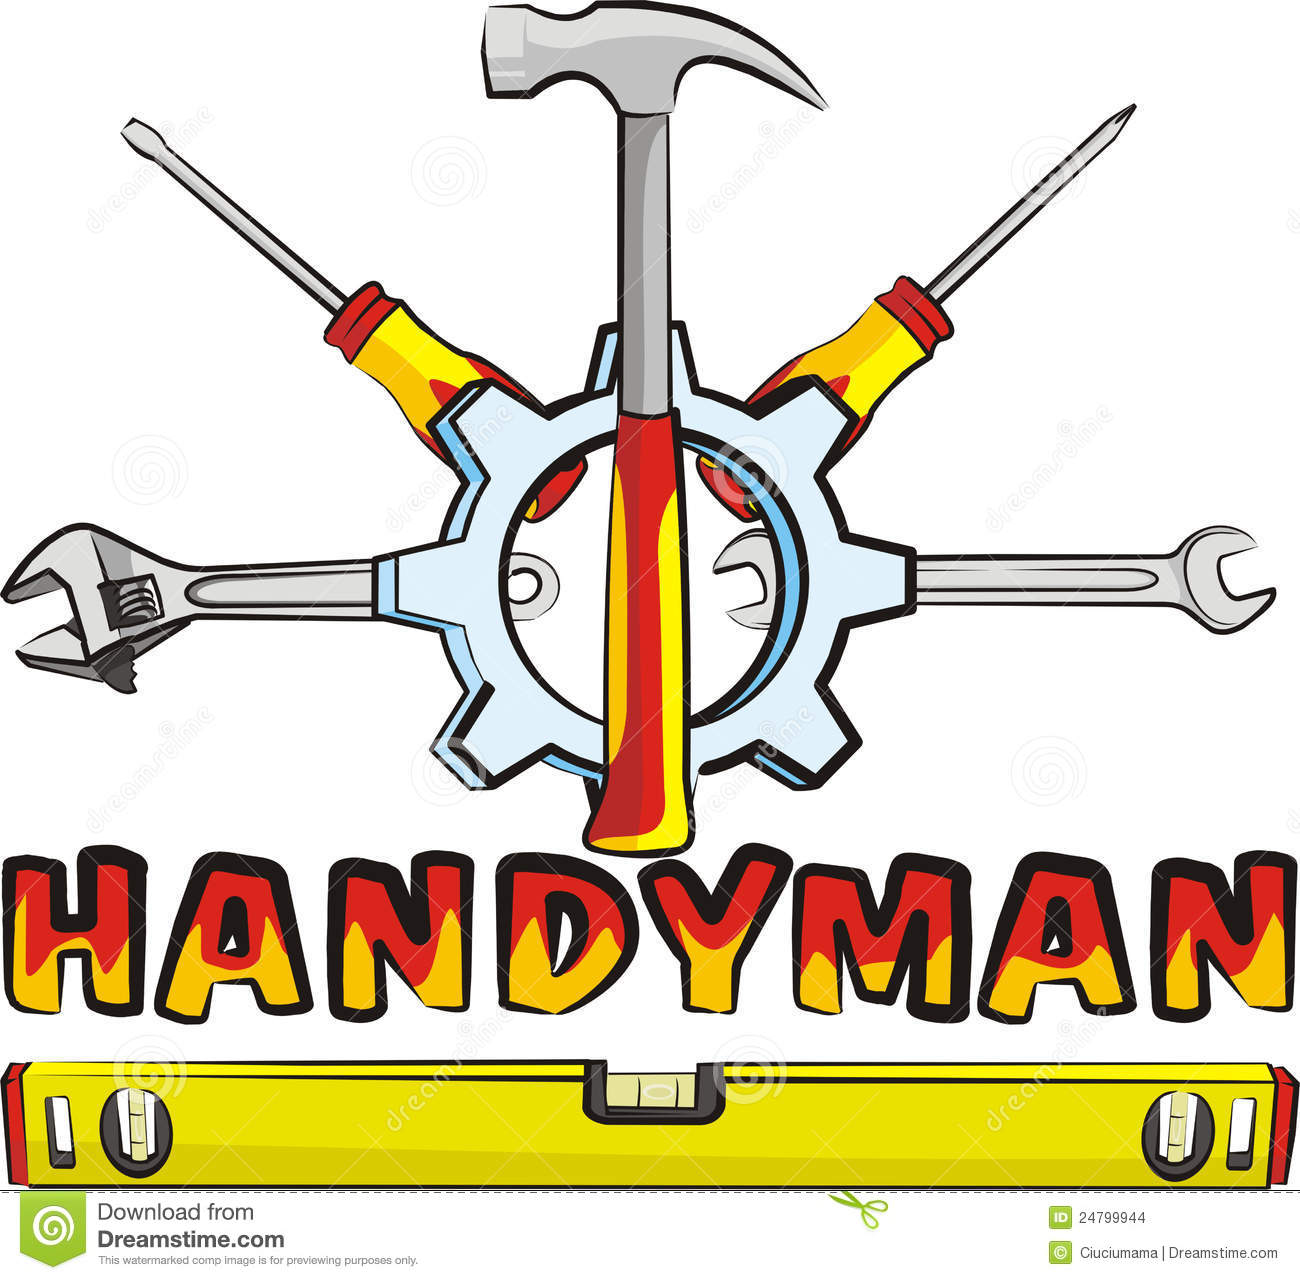 Engine 861 in addition Blank Service Invoice Template further Stock Images Handyman Tools Image24799944 besides Your Local Handymancouk besides Invoice Template For Graphic Design. on printable plumbing logos